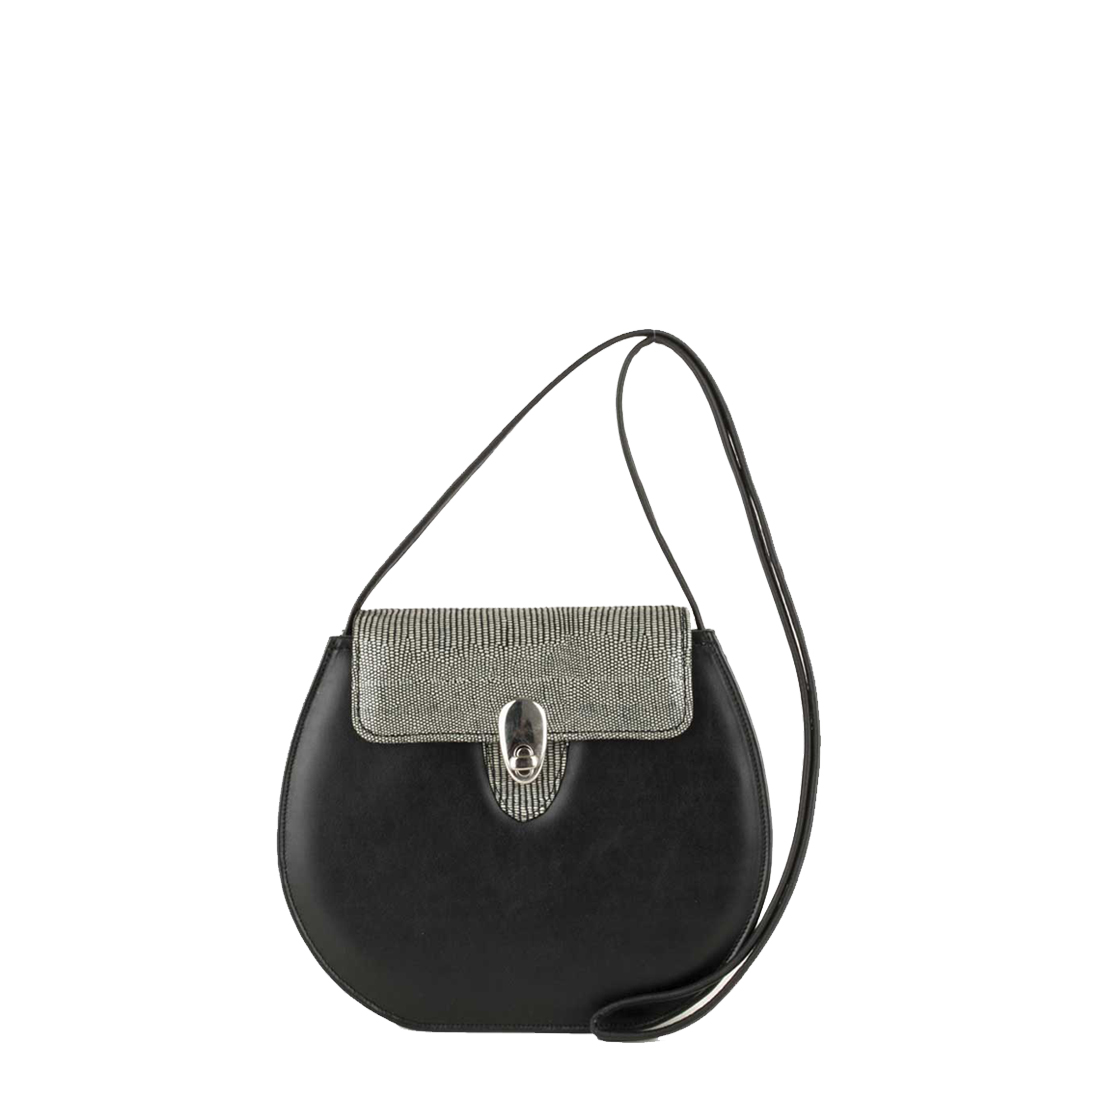 Mae Black Leather Shoulder Bag